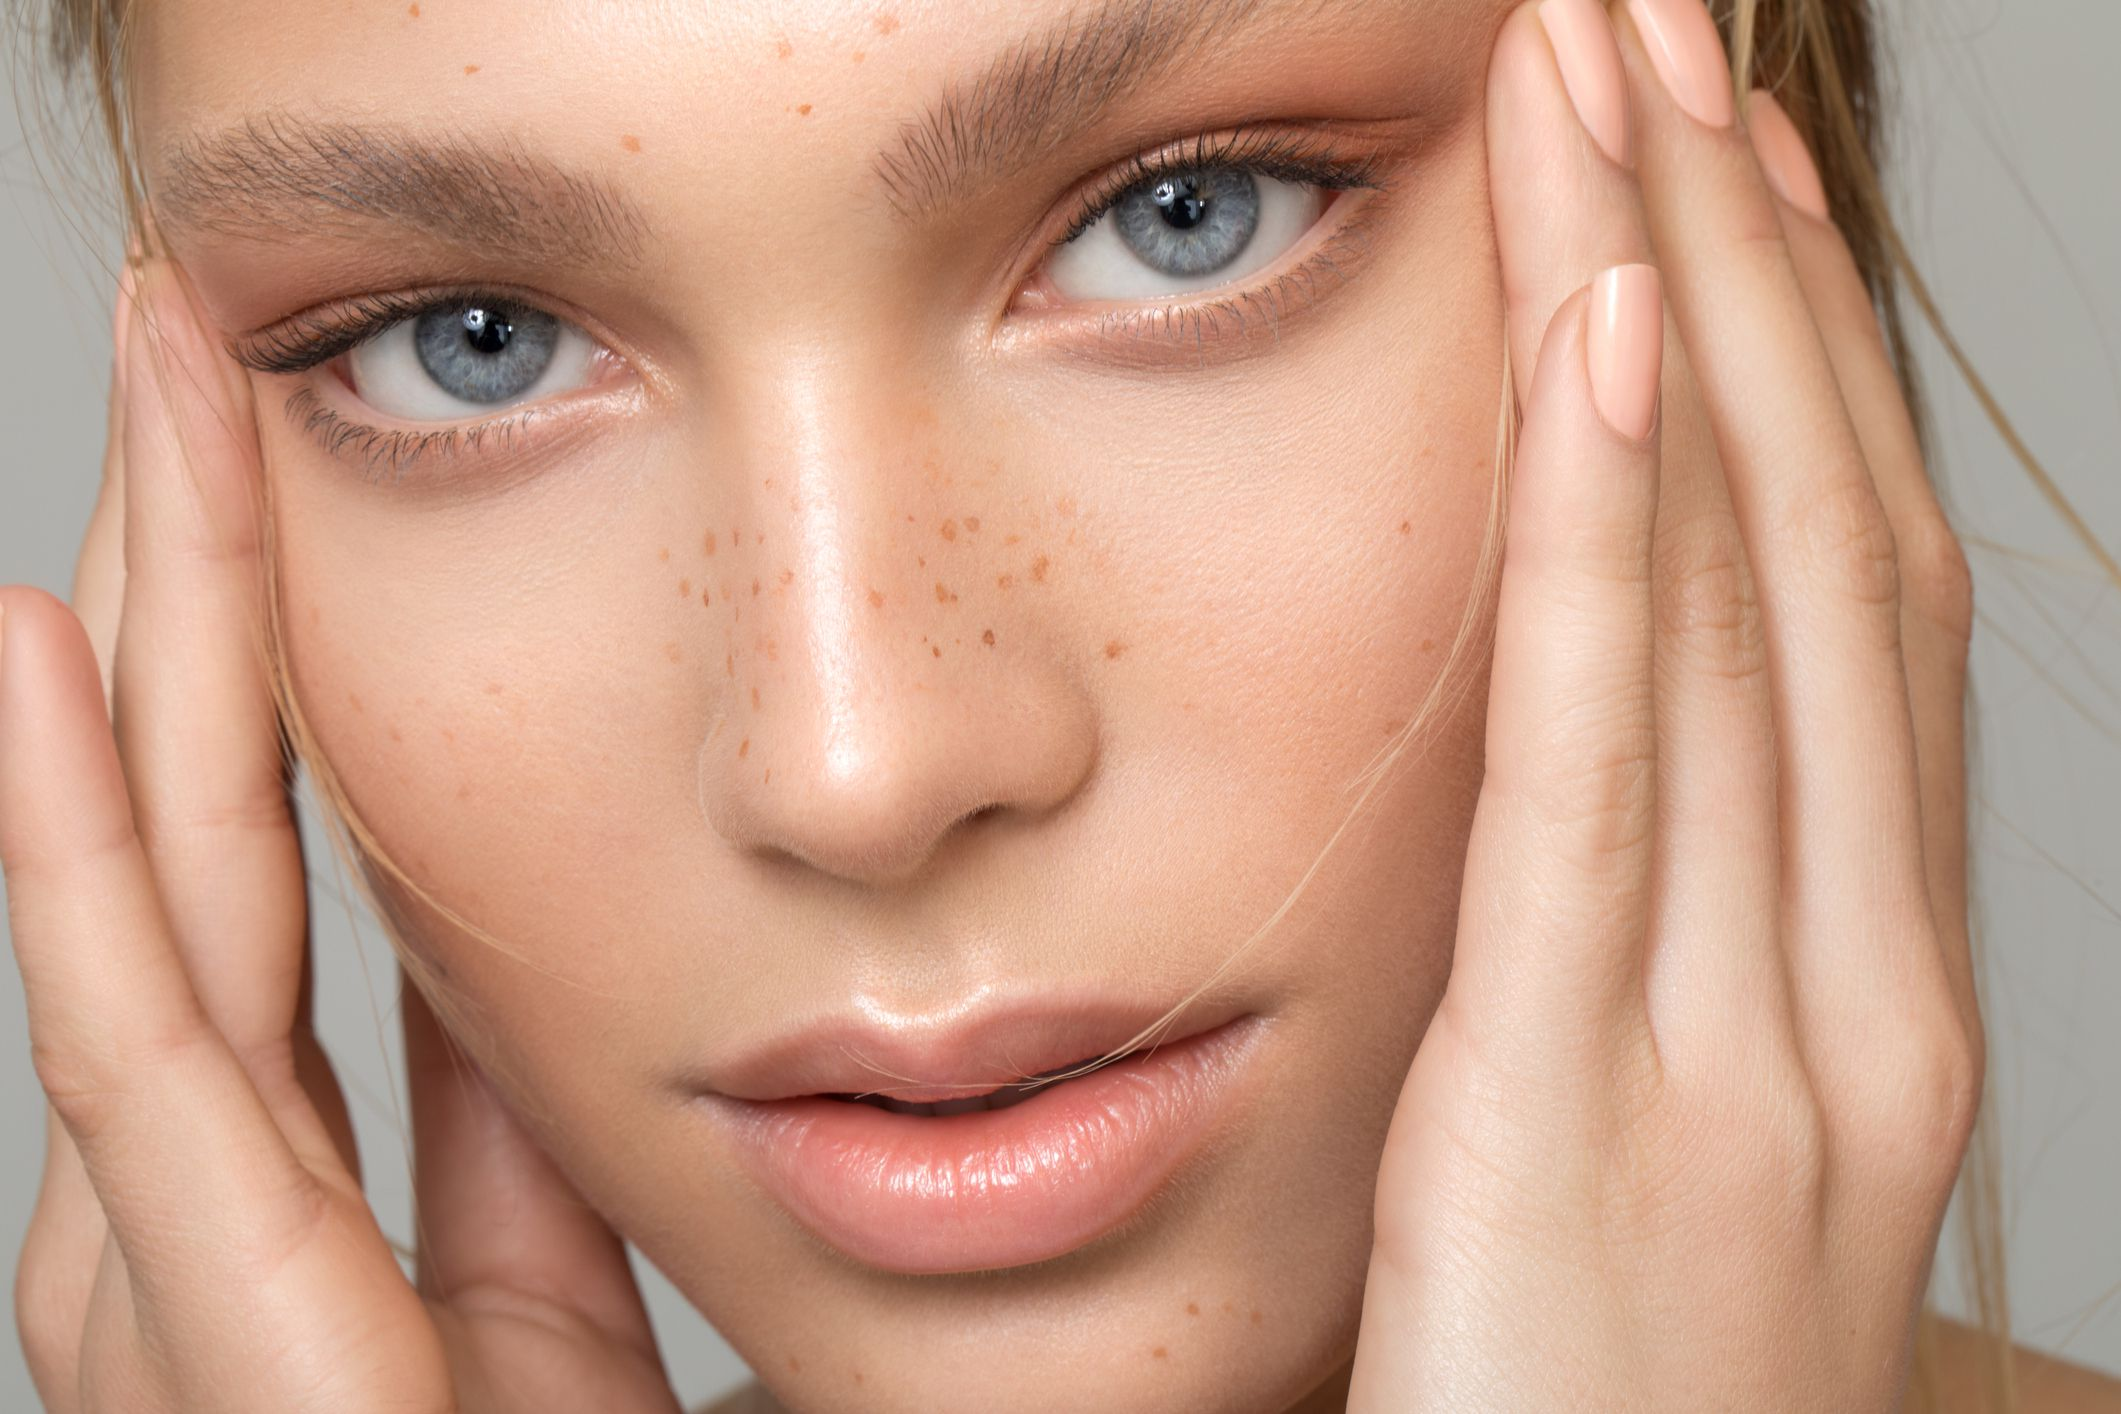 Is Your Oily Skin Getting You Down?